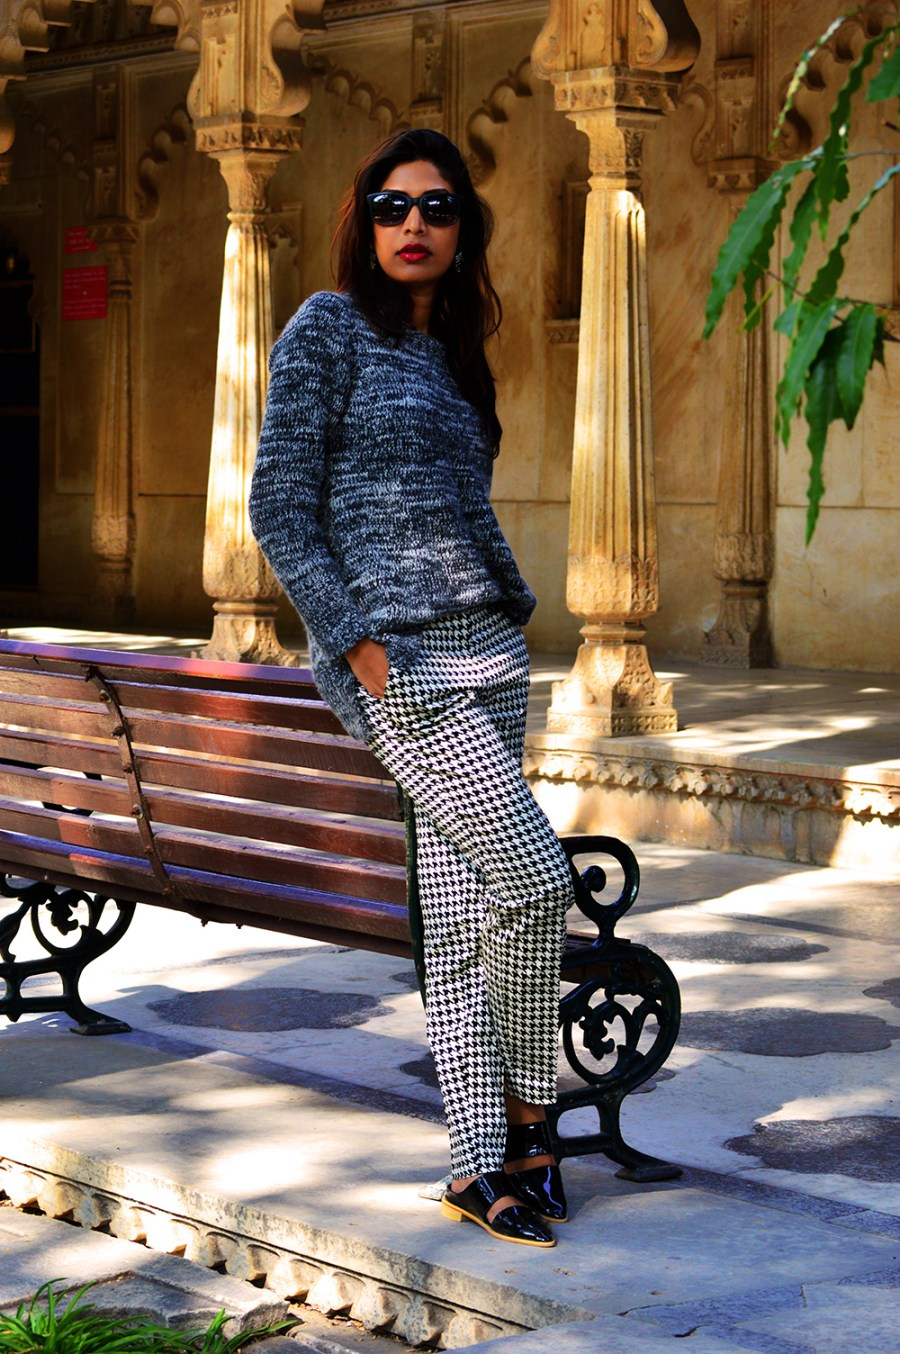 Fashion, Style, Indian Fashion Blog, OOTD, Street Style, Fashion Blogger, Fashion Photography, Vero Moda Printed Pants, Mango Sweater, Lara Karen Shoes, Jabong, Holiday, Travel